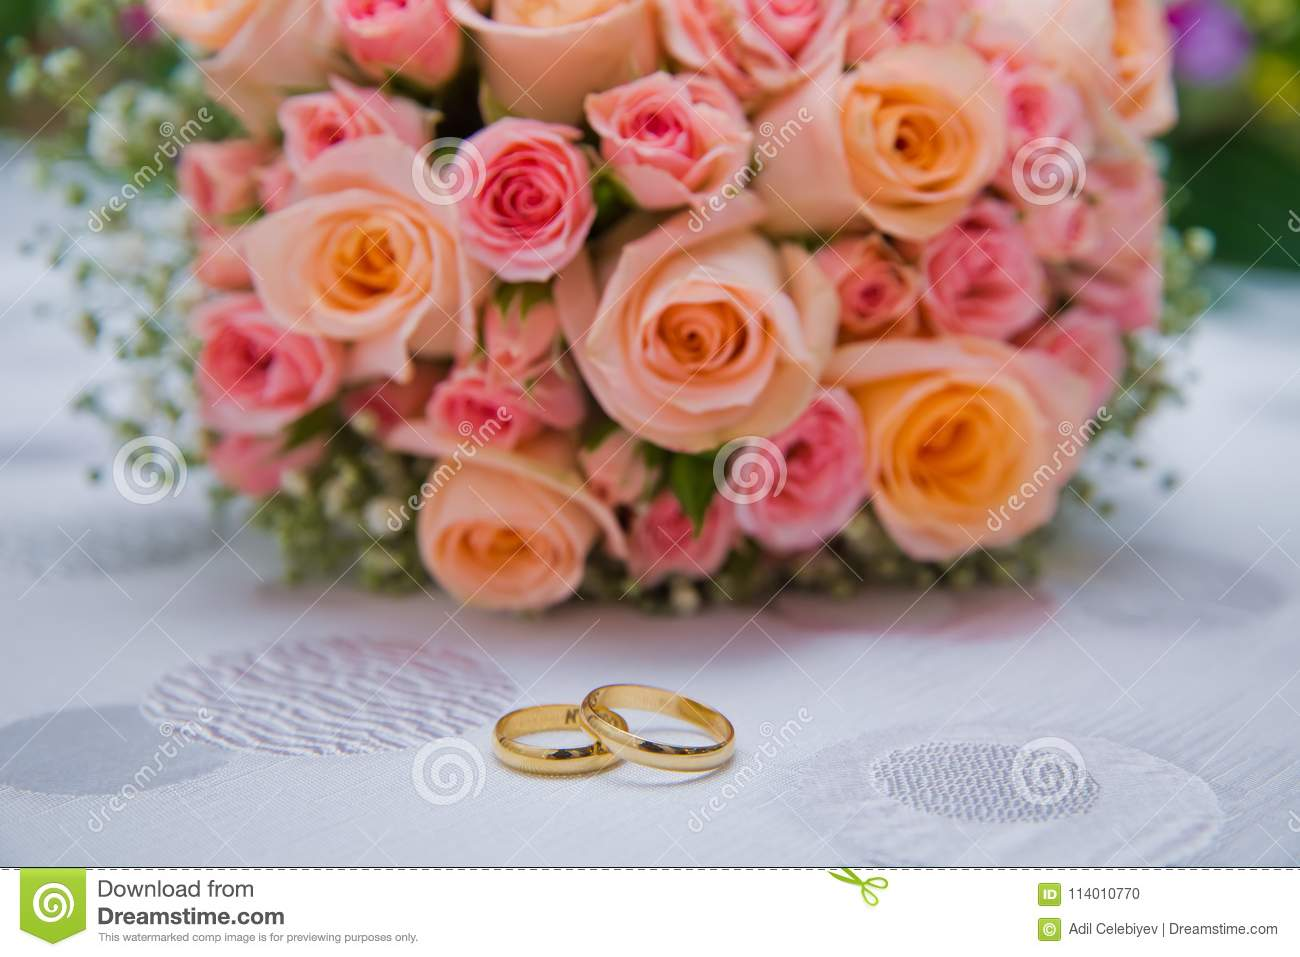 Bridal Bouquet With Orange And Pink Roses Of Different Size With